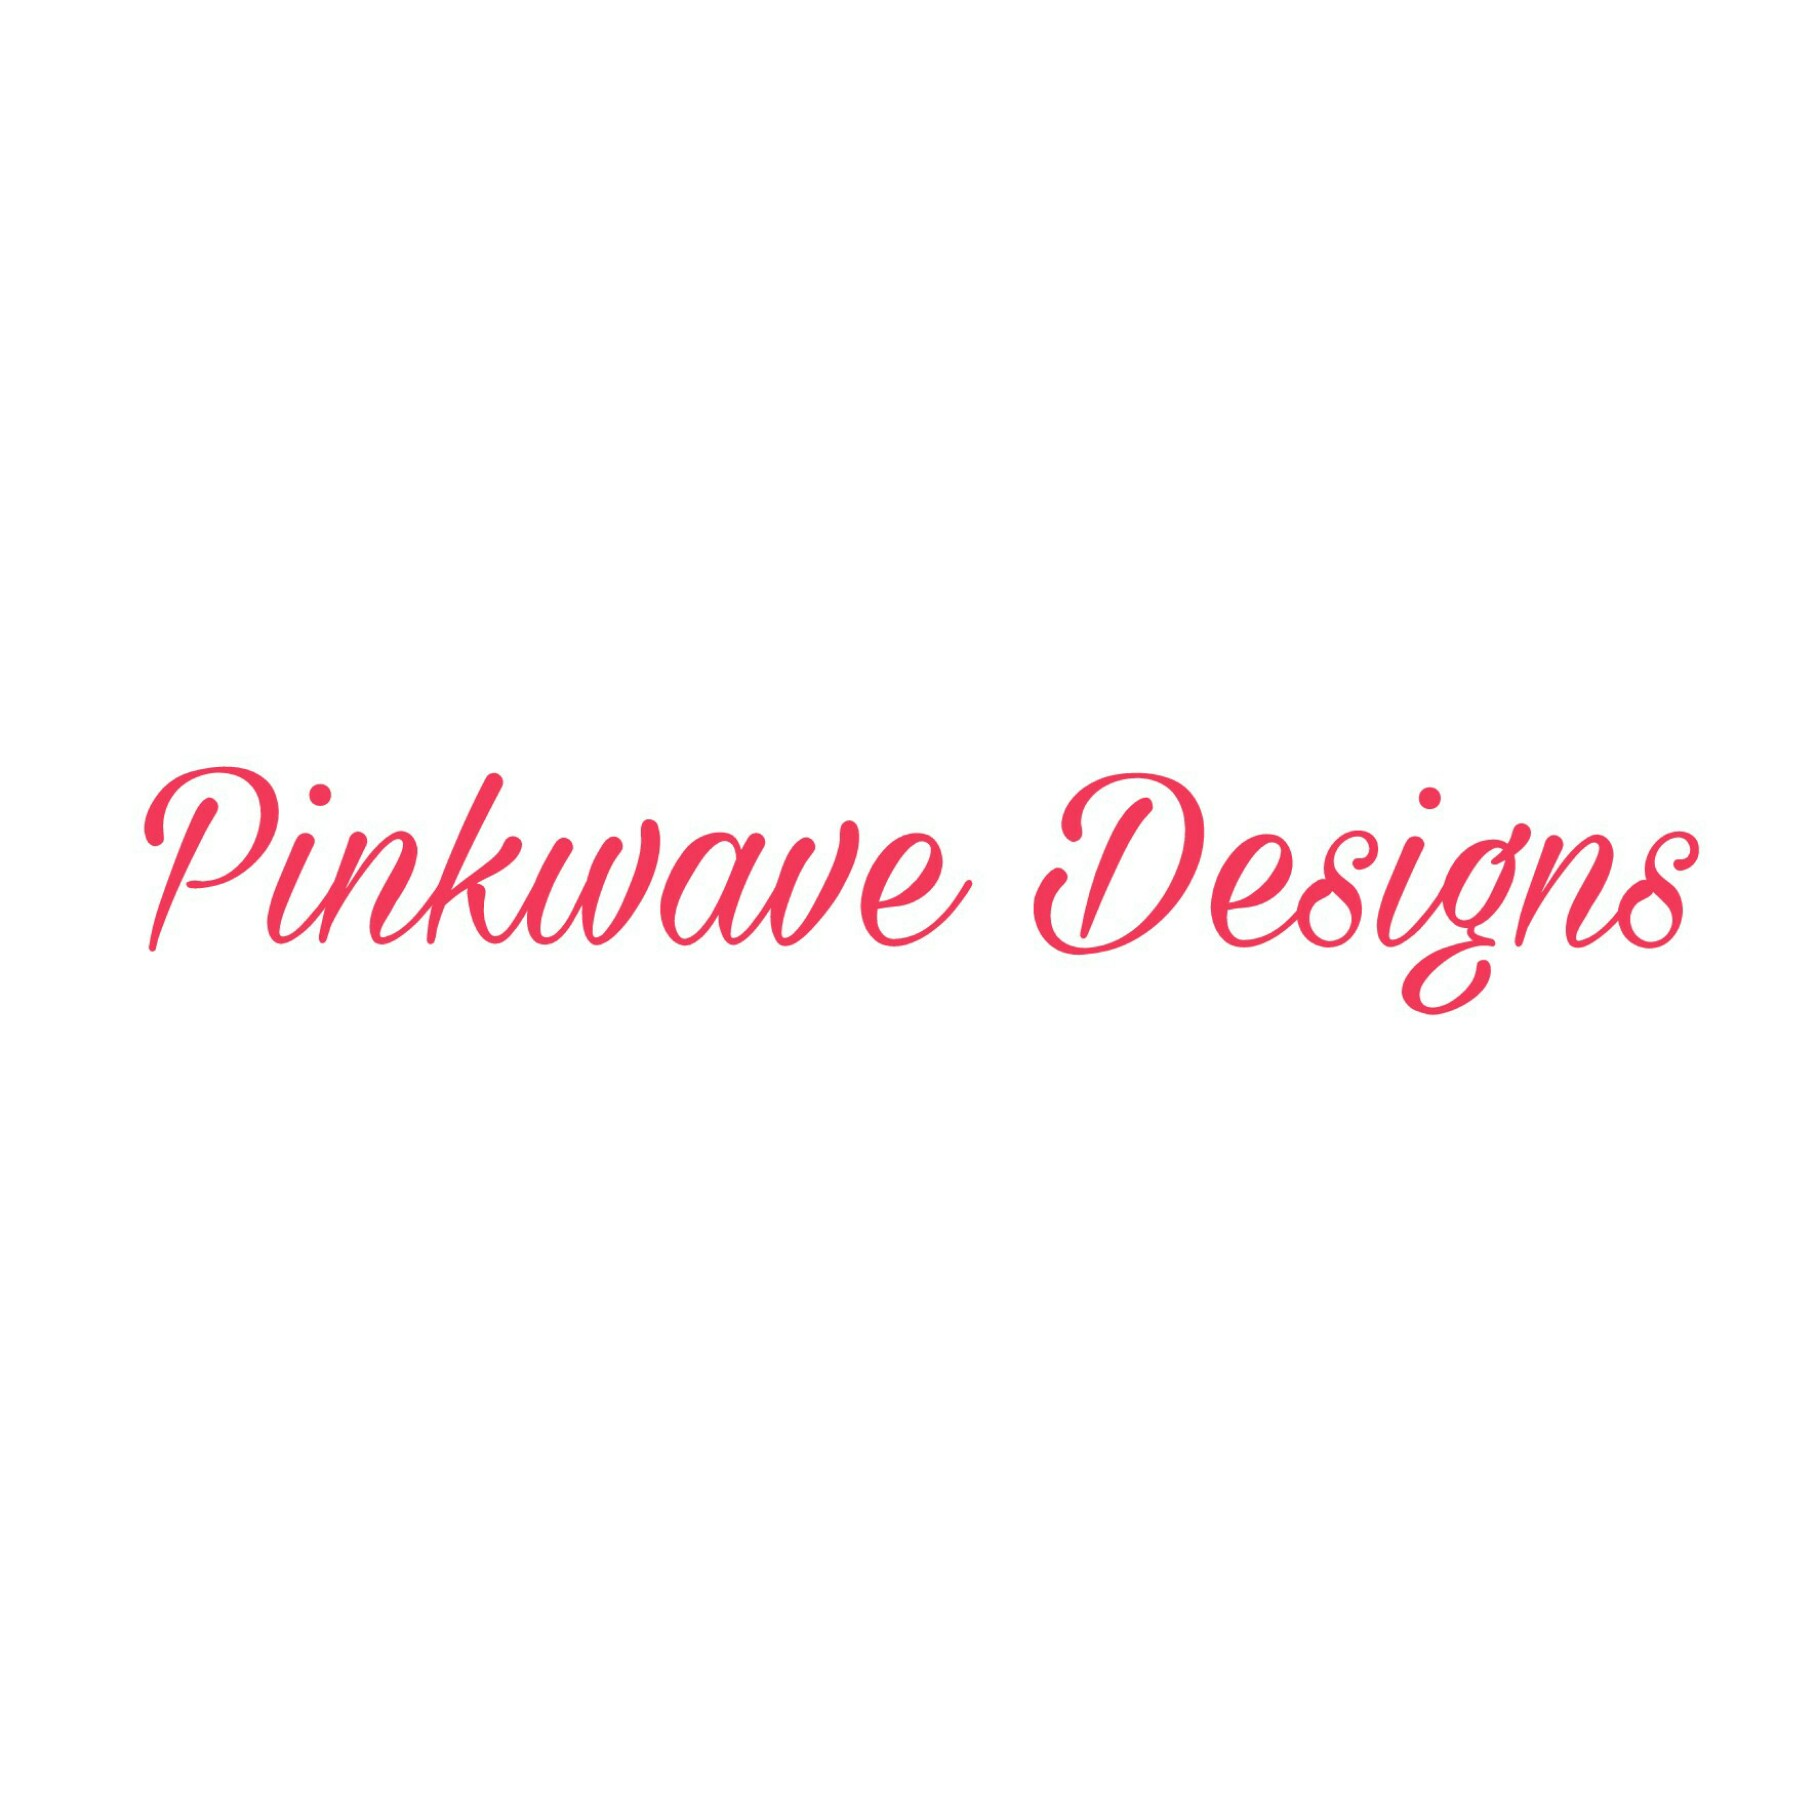 greeting cards by PinkWave Designs